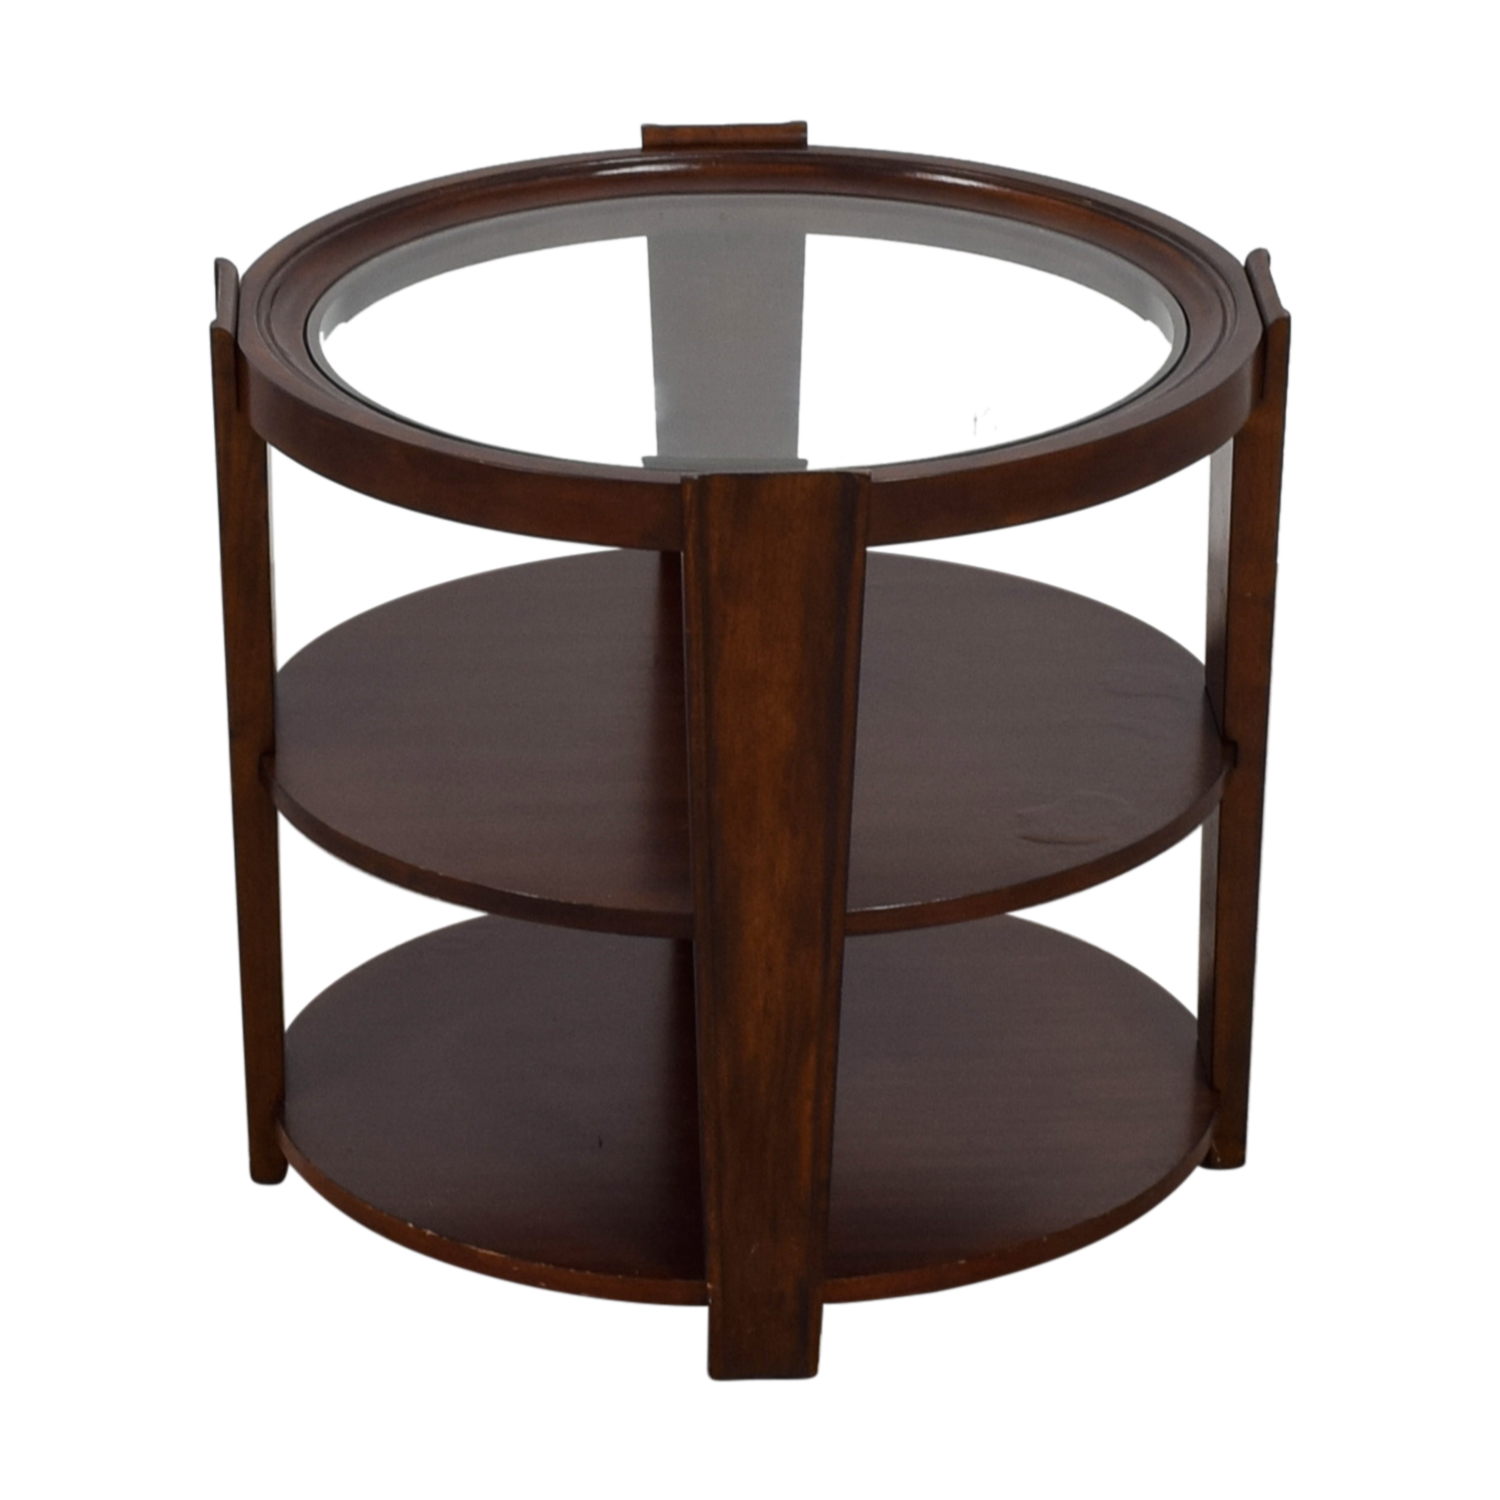 Round Wood and Glass Side Table used